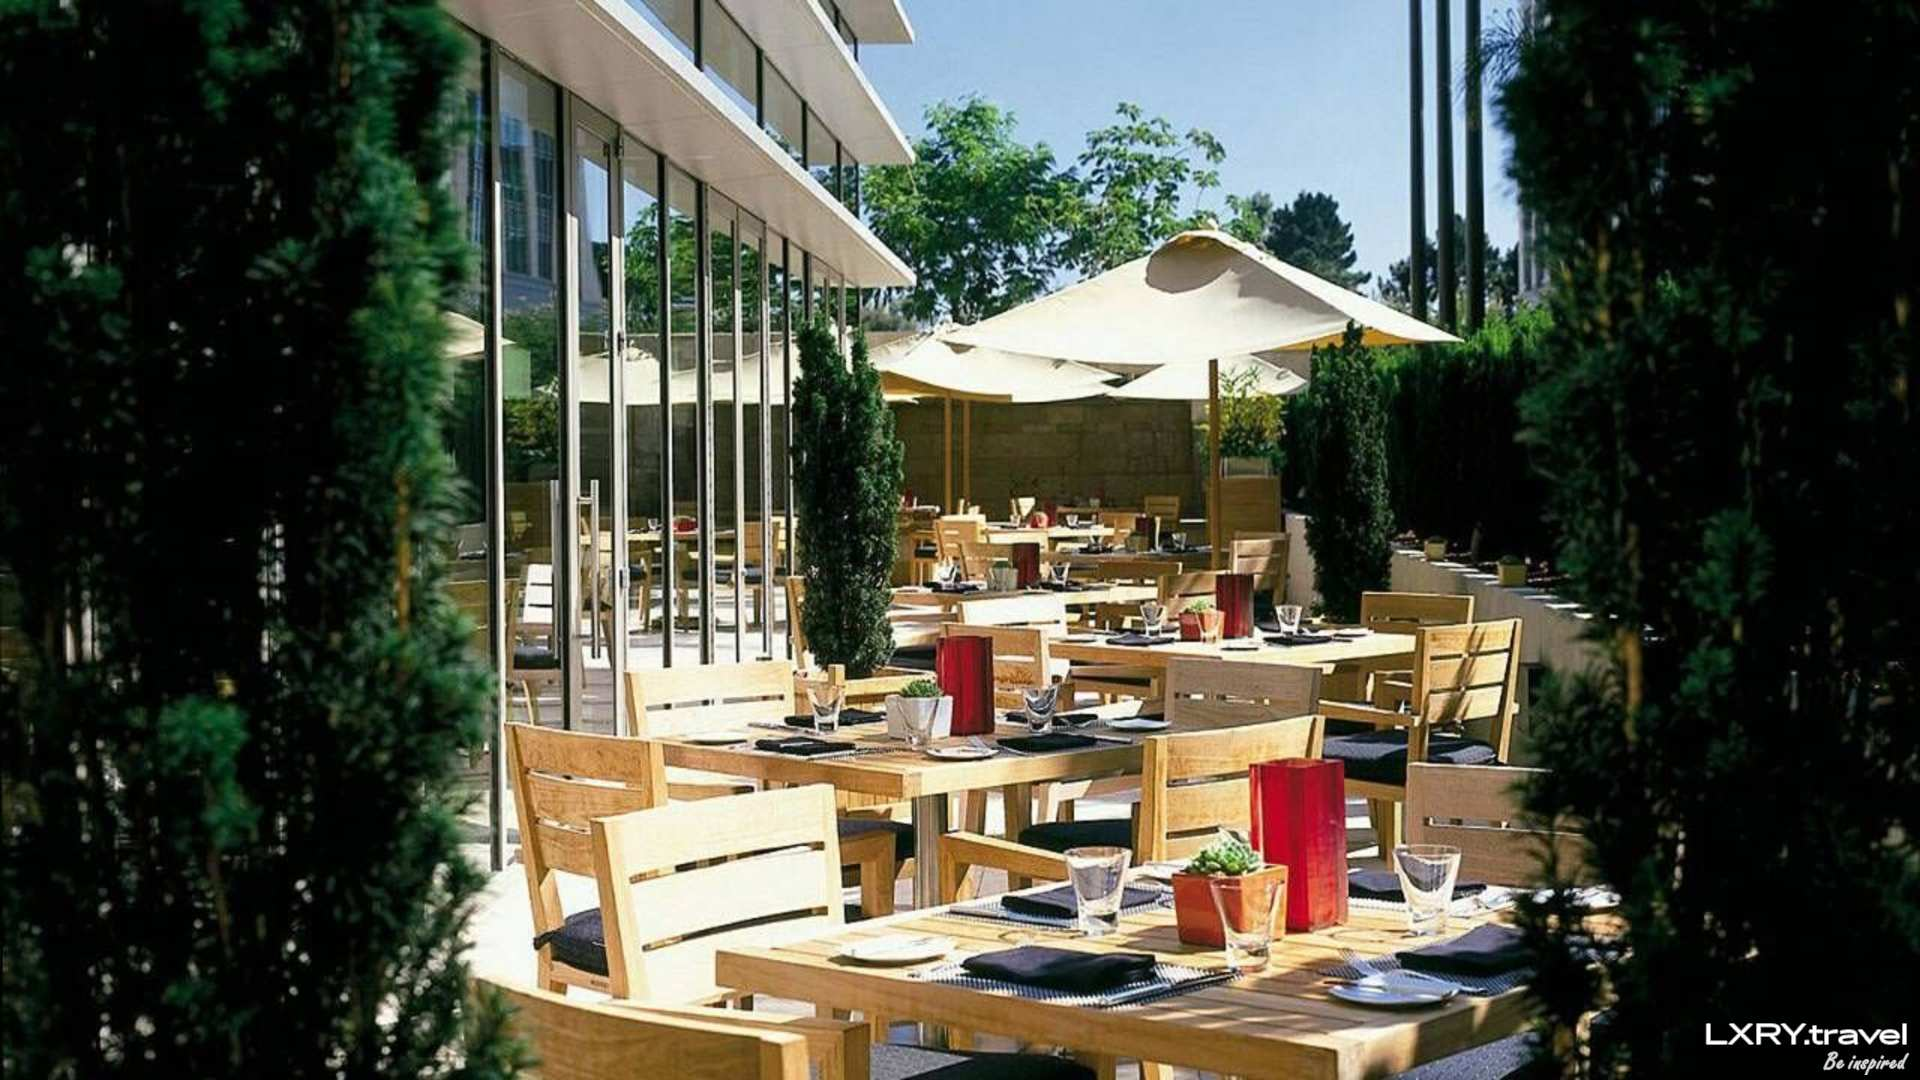 Four Seasons Hotel Silicon Valley at East Palo Alto 17/35